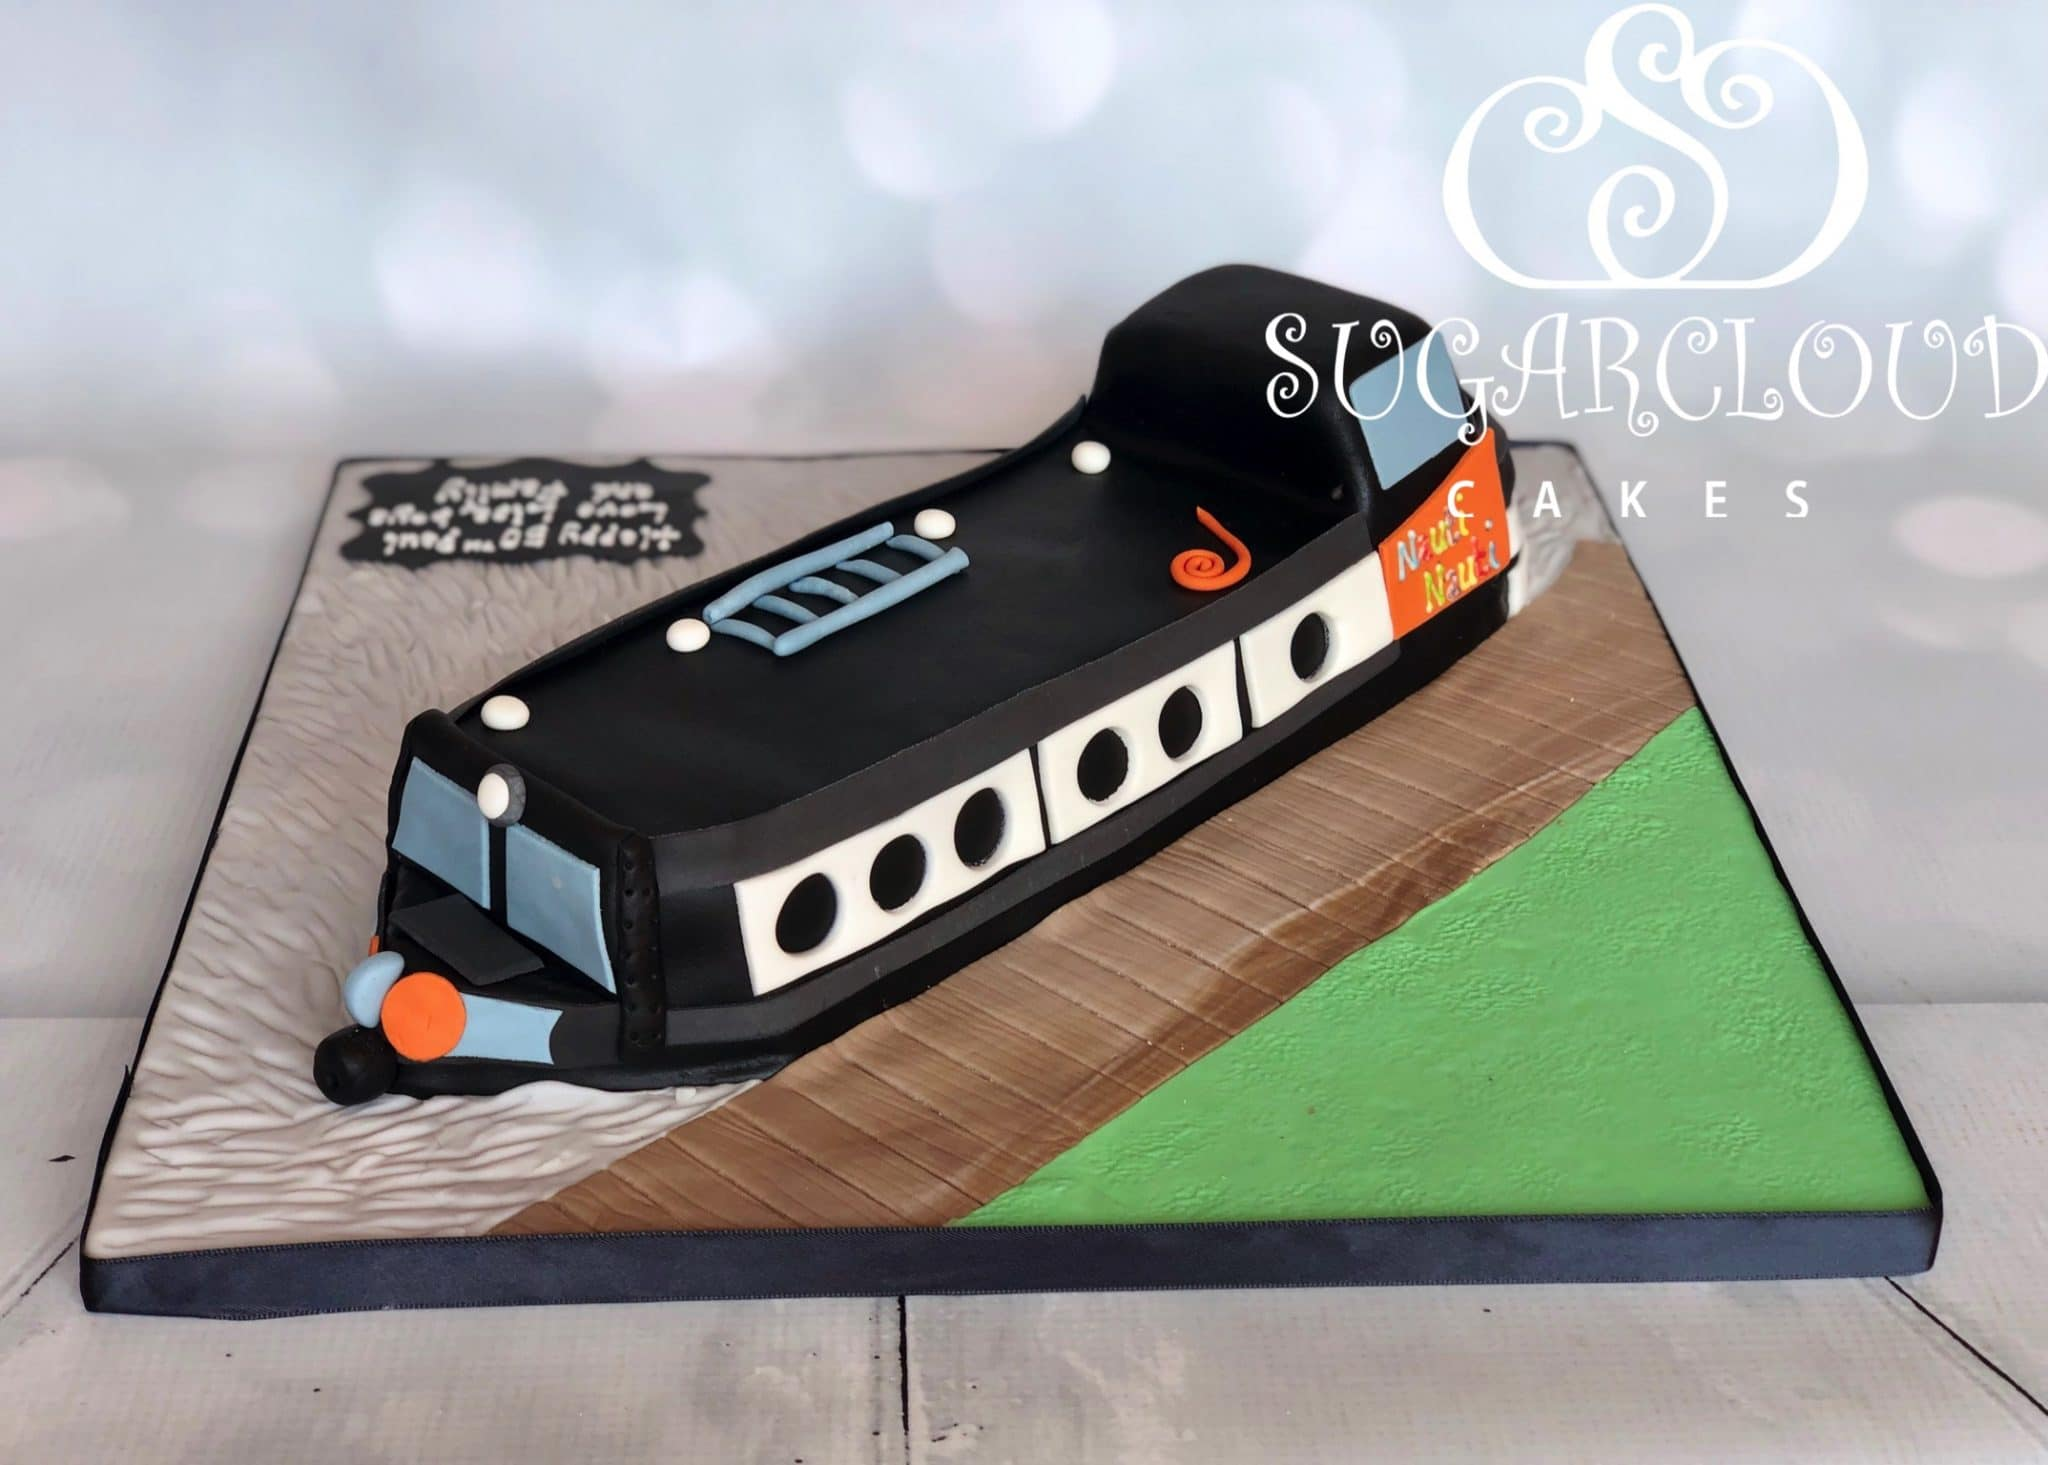 A 50th Birthday Narrow Boat Cake for Paul, Crewe